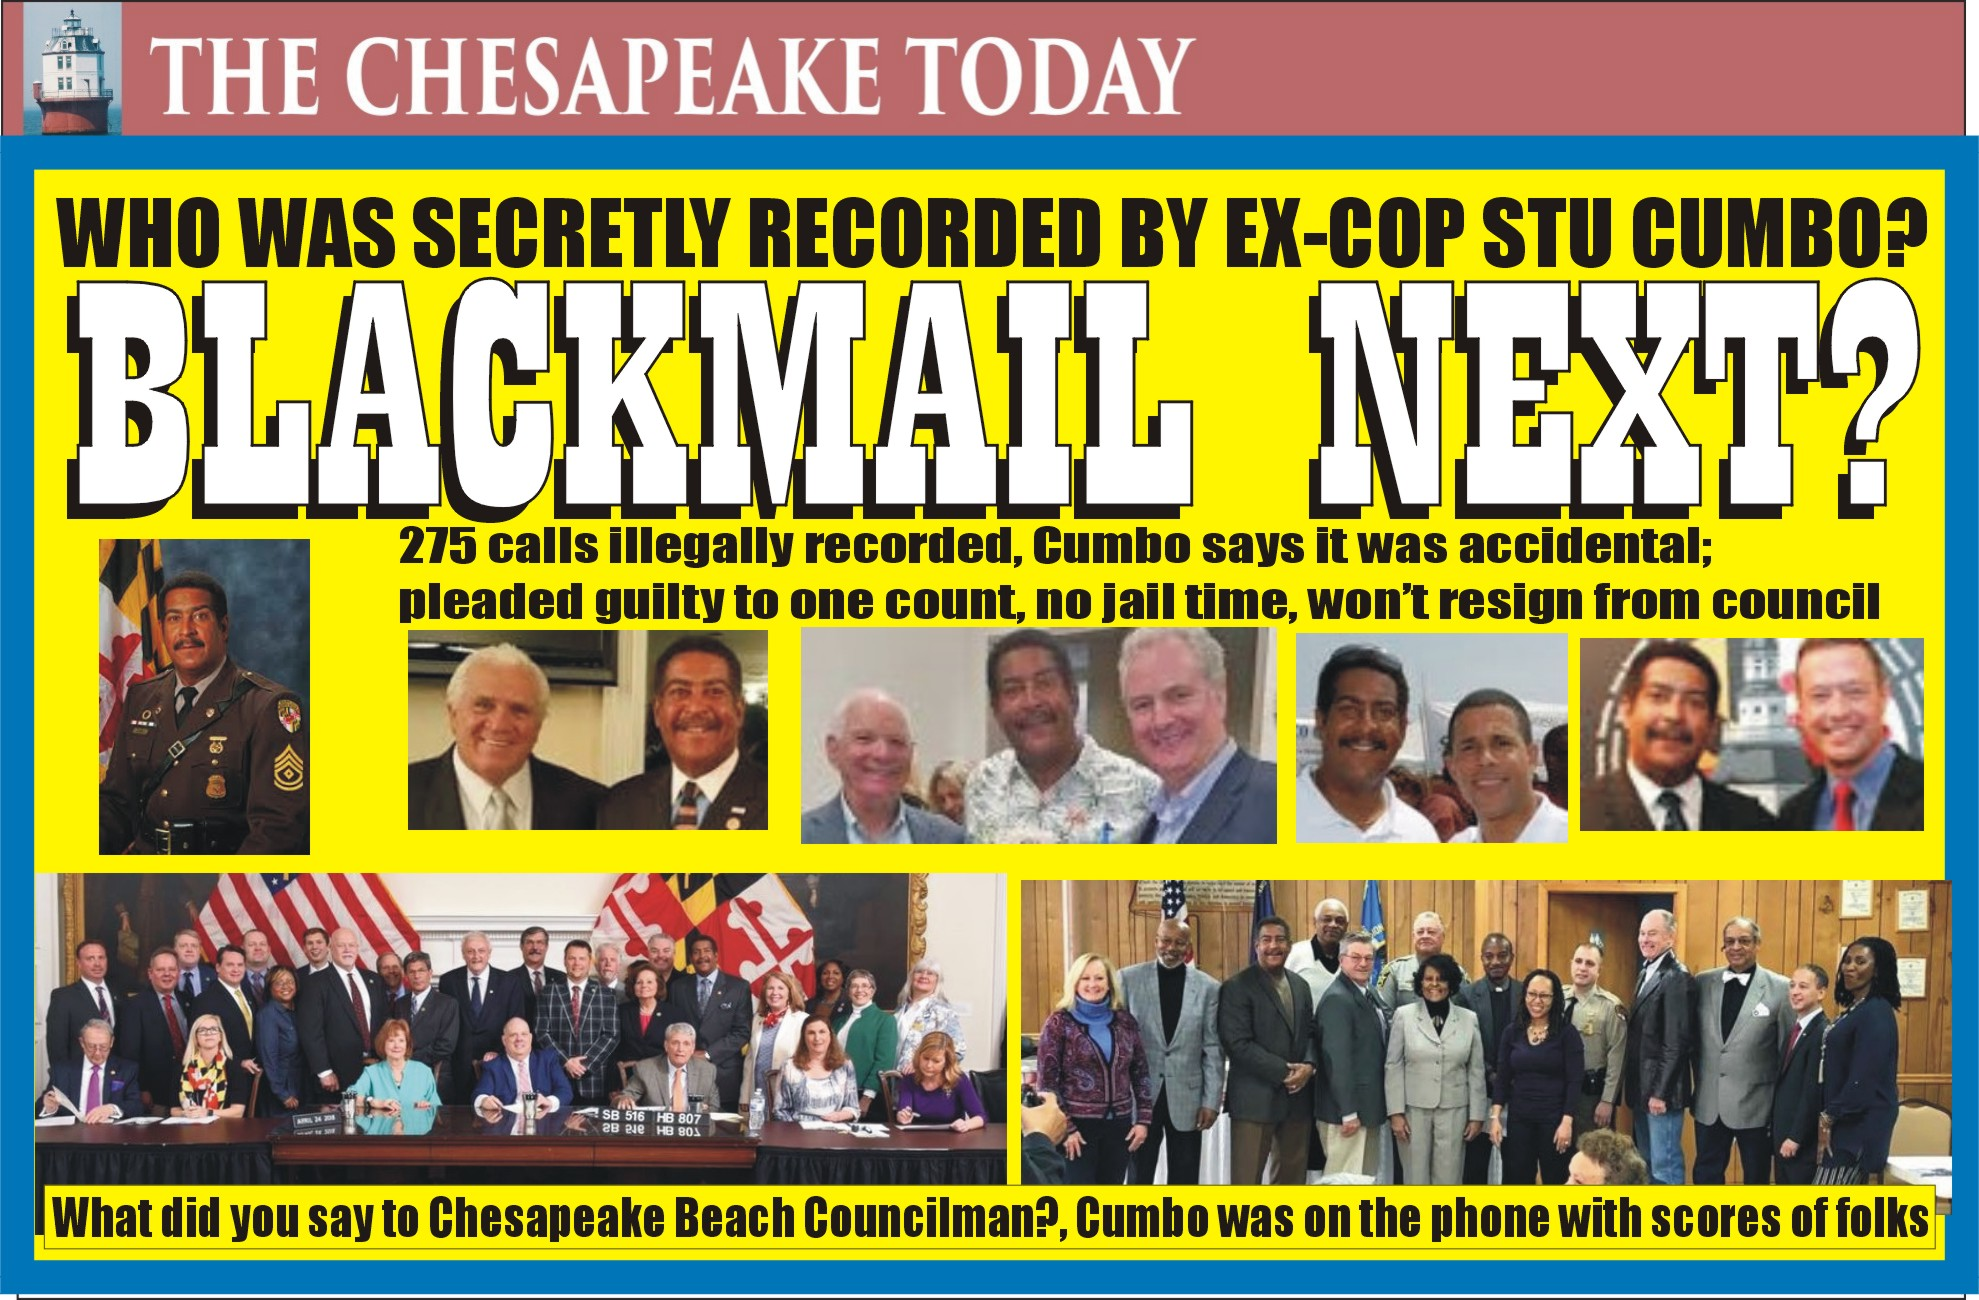 CROOKED POLITICIAN: Chesapeake Beach Councilman Stewart Cumbo Pleaded Guilty to Illegal Wiretapping